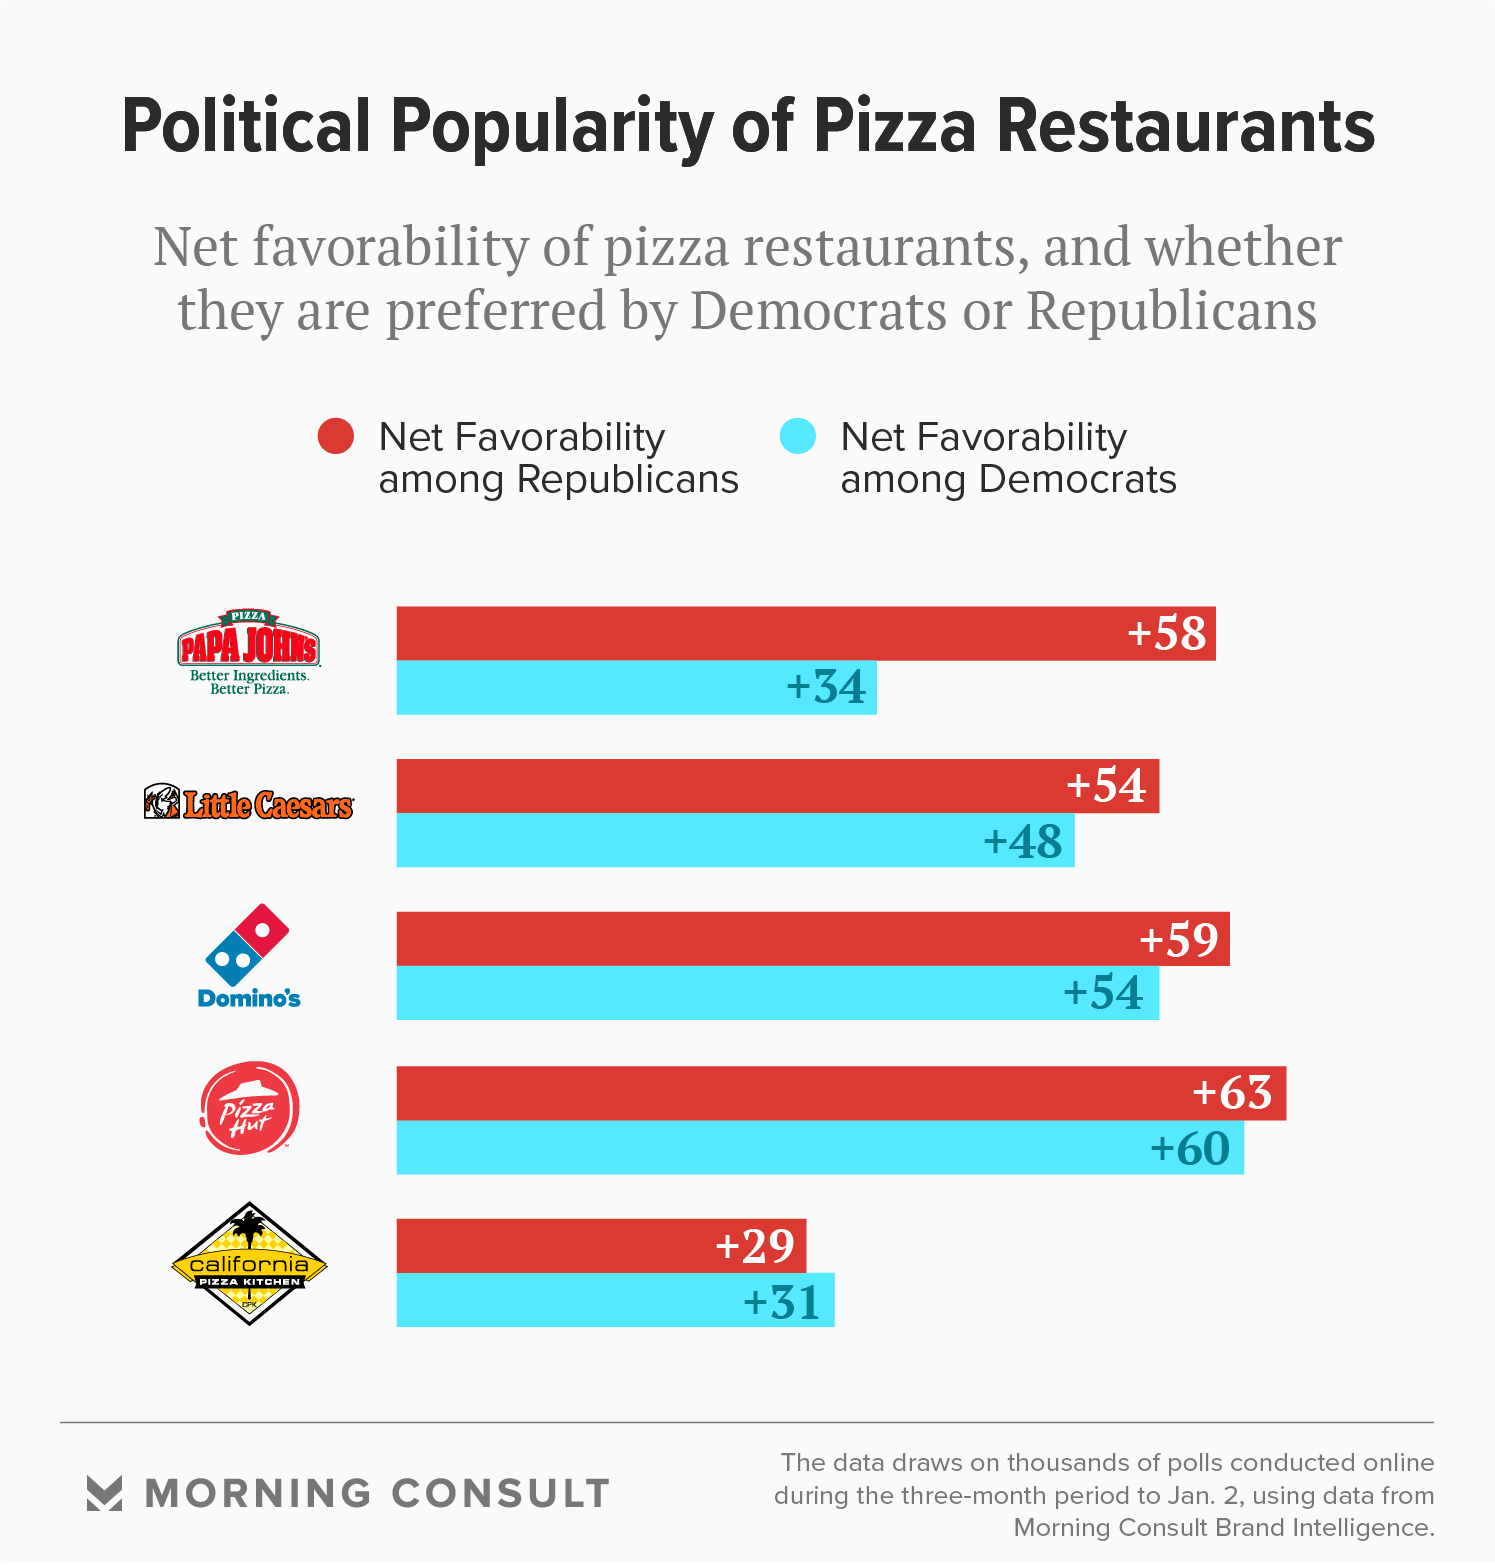 Partisan Divide: Why Pizza Chains Are More Popular Among Republicans